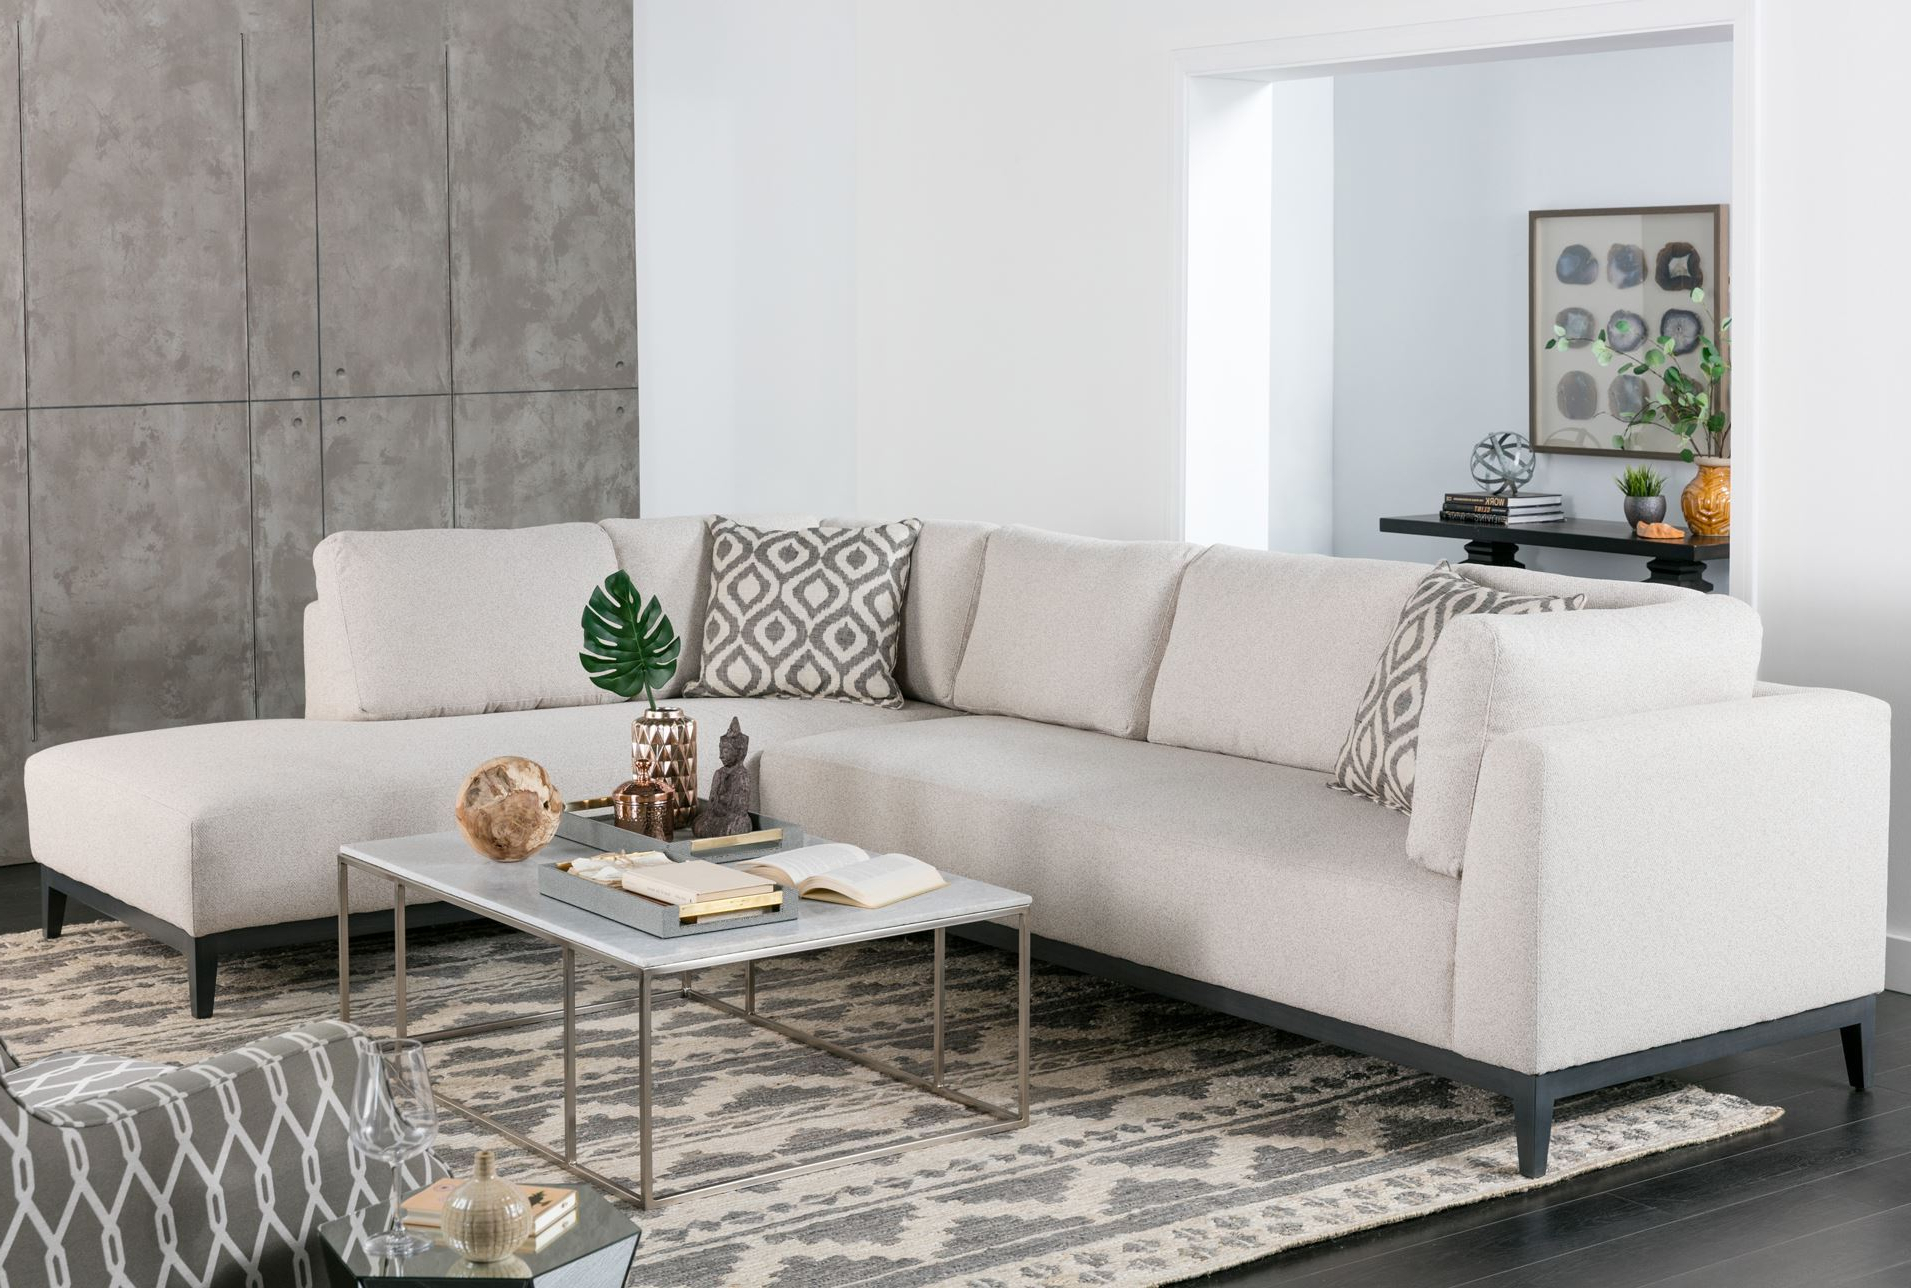 Aspen 2 Piece Sectionals With Laf Chaise With Regard To 2018 Collection Of Solutions Sectional Sofa With 2 Chaises On Aspen  (View 8 of 20)